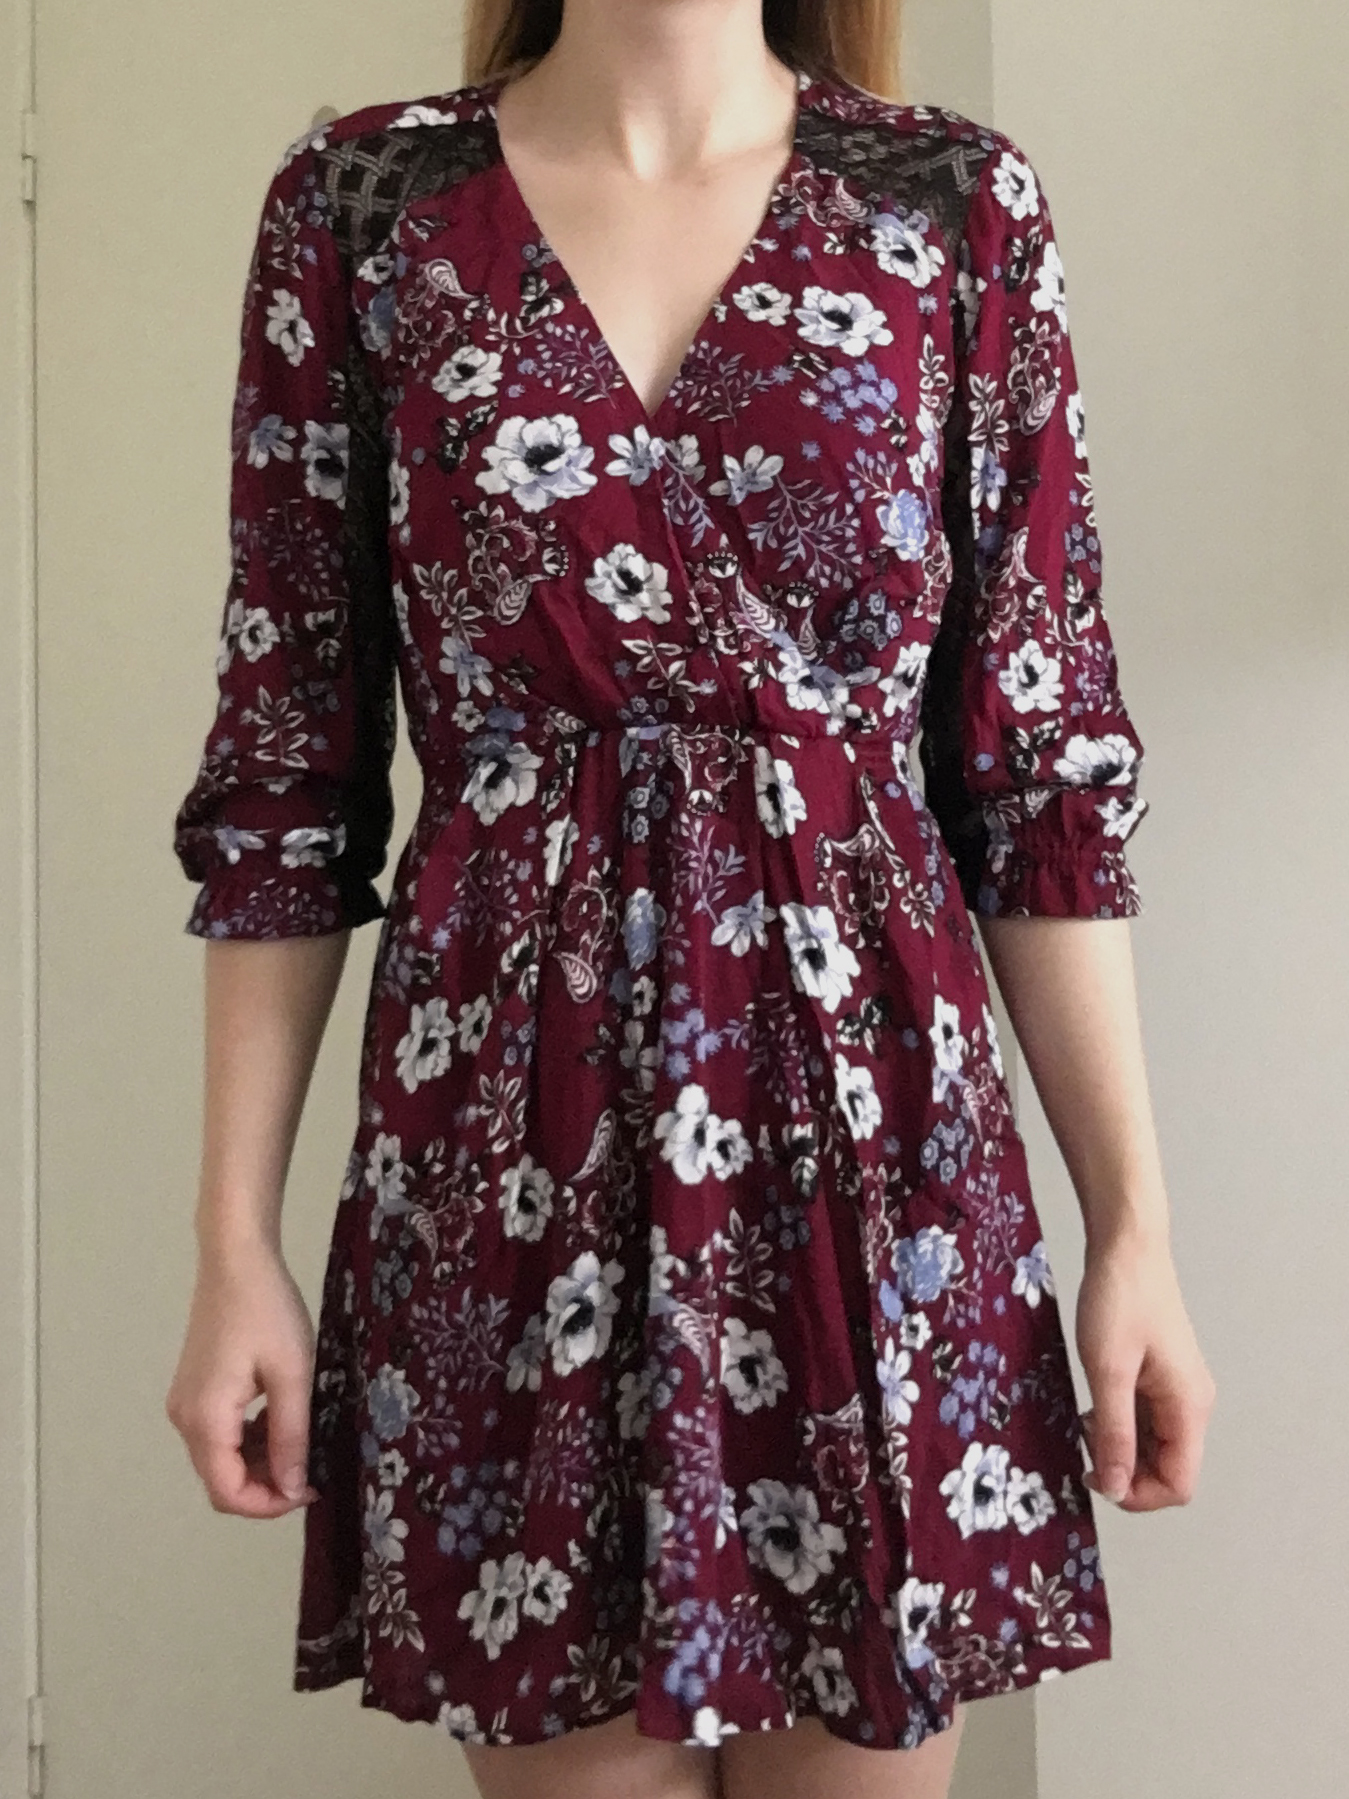 19 Cooper Floral Dress with Lace Back 1